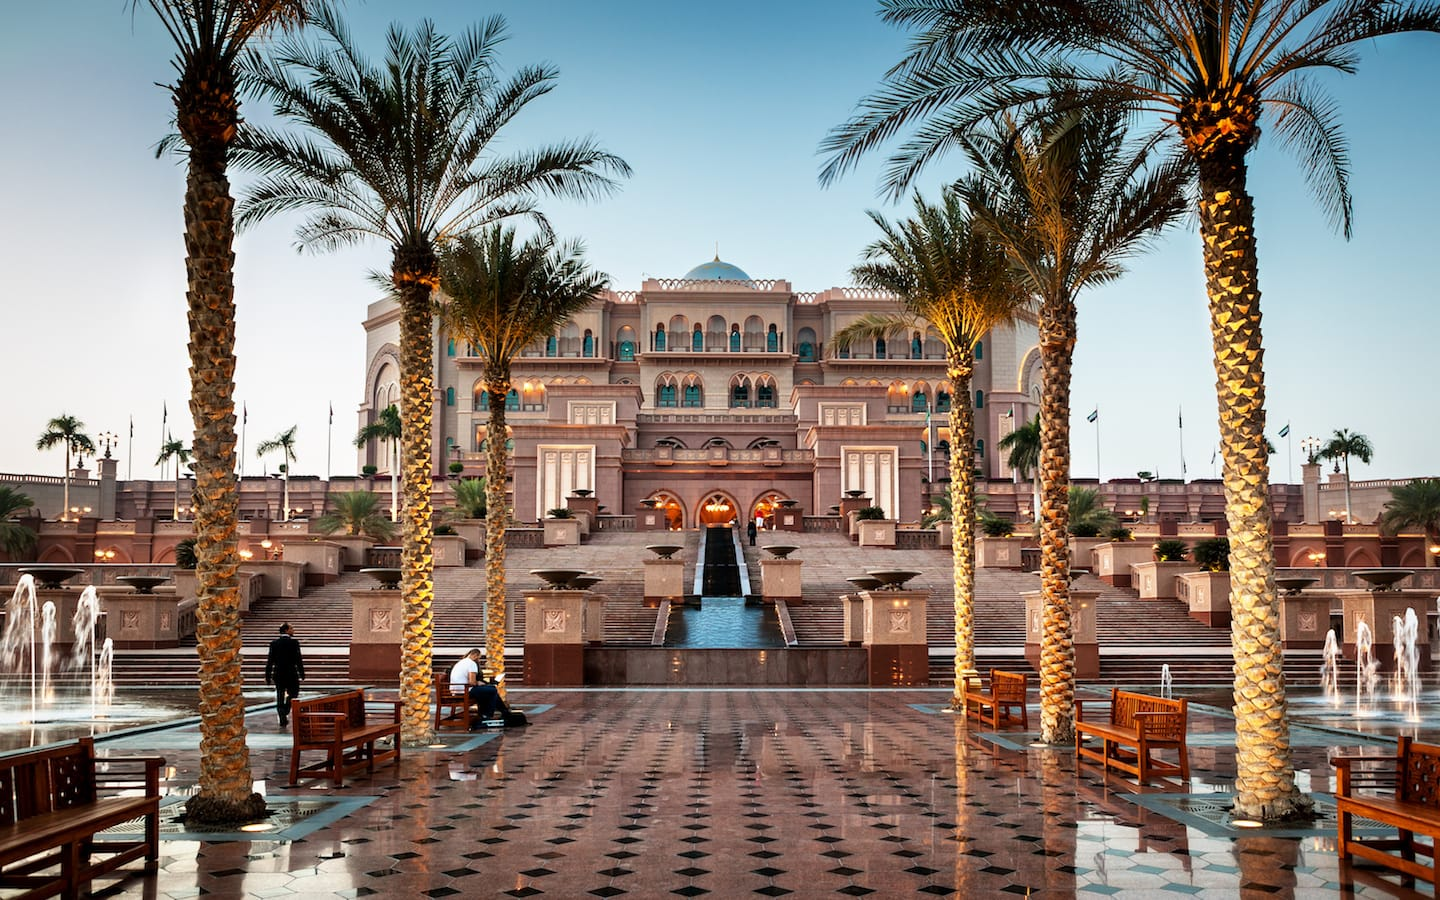 Visiting the Emirates Palace is one of the free things to do in Abu Dhabi at night as well.